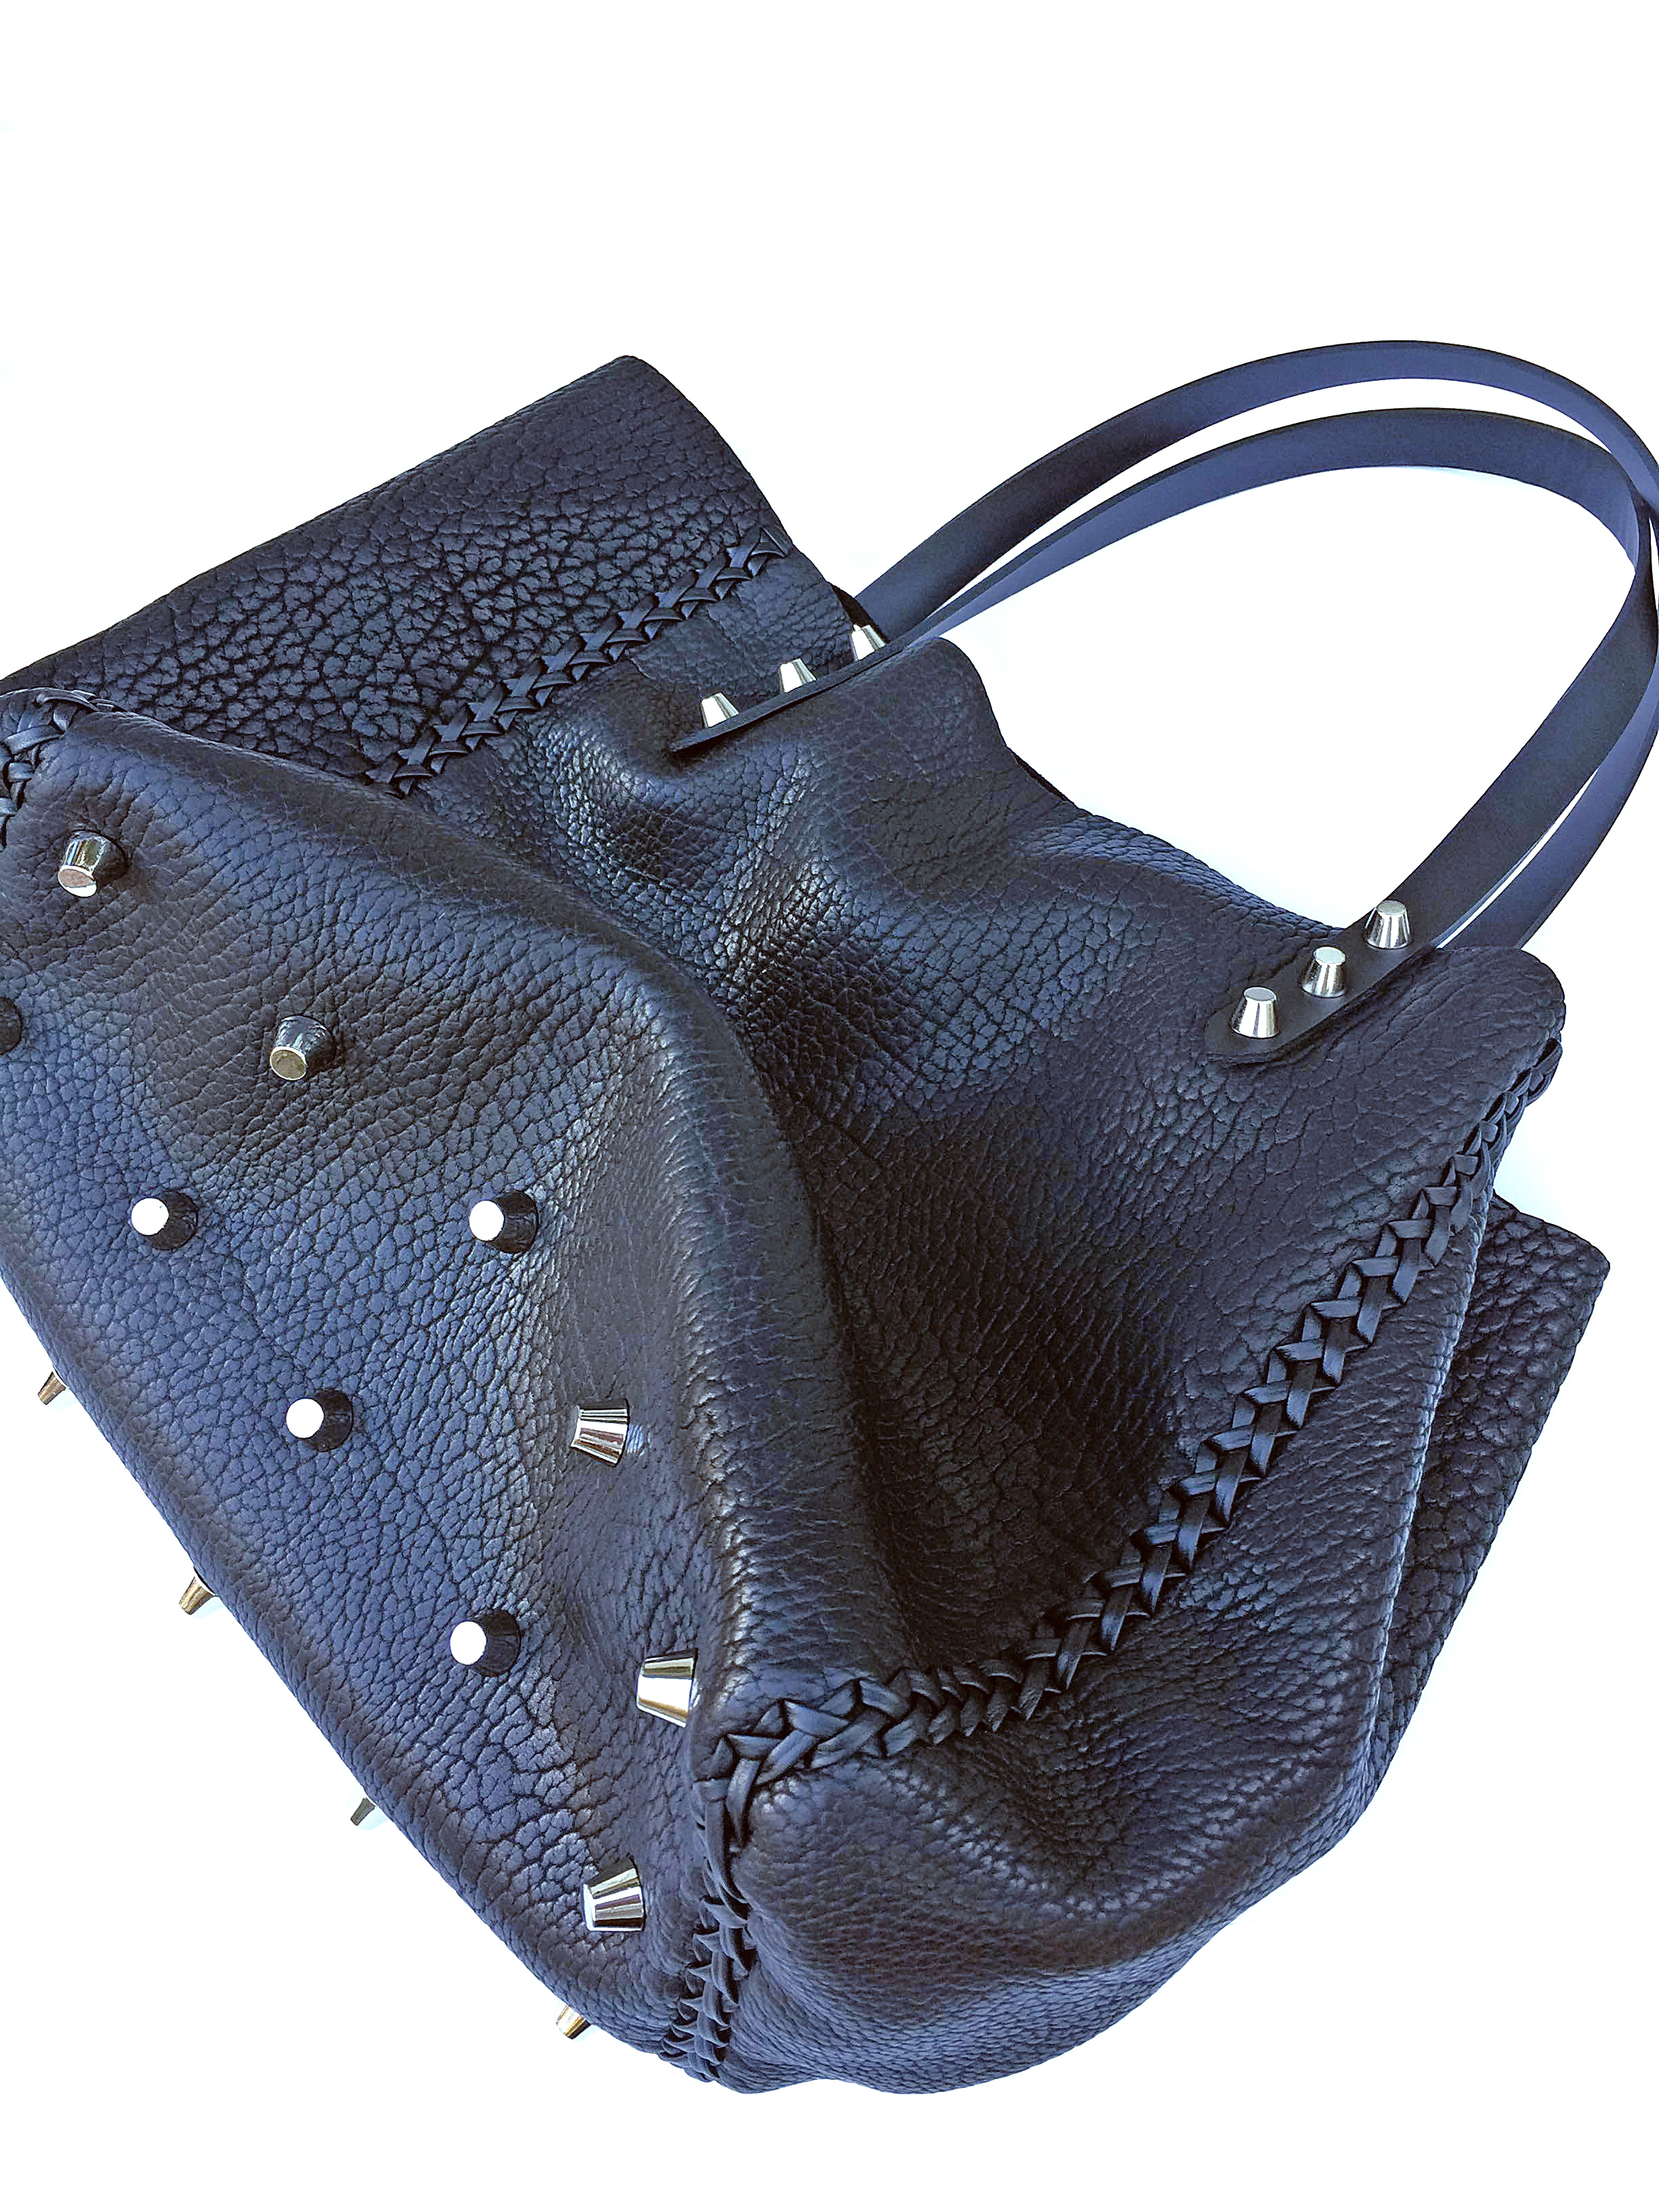 Tote bag with silver hardware